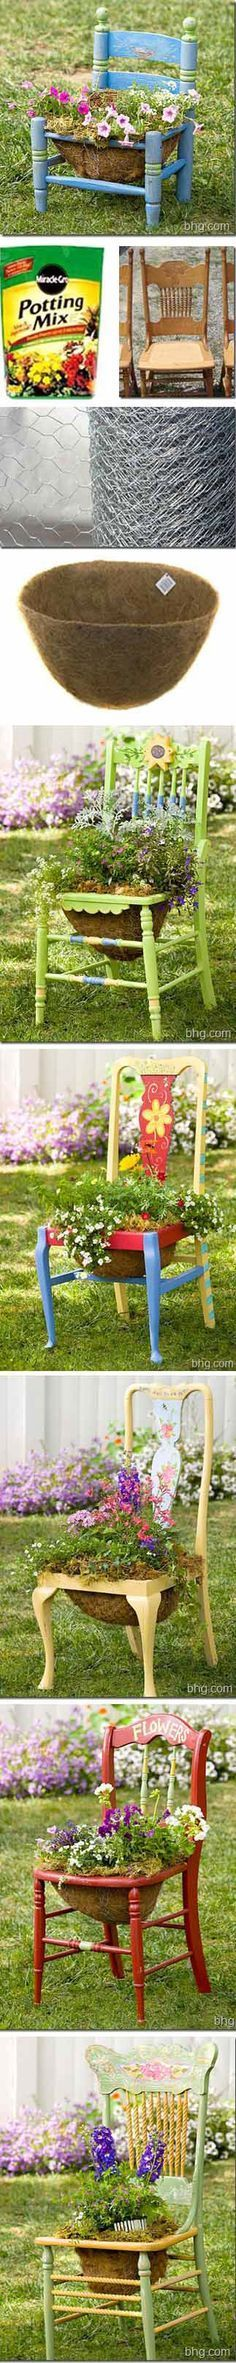 using old chairs